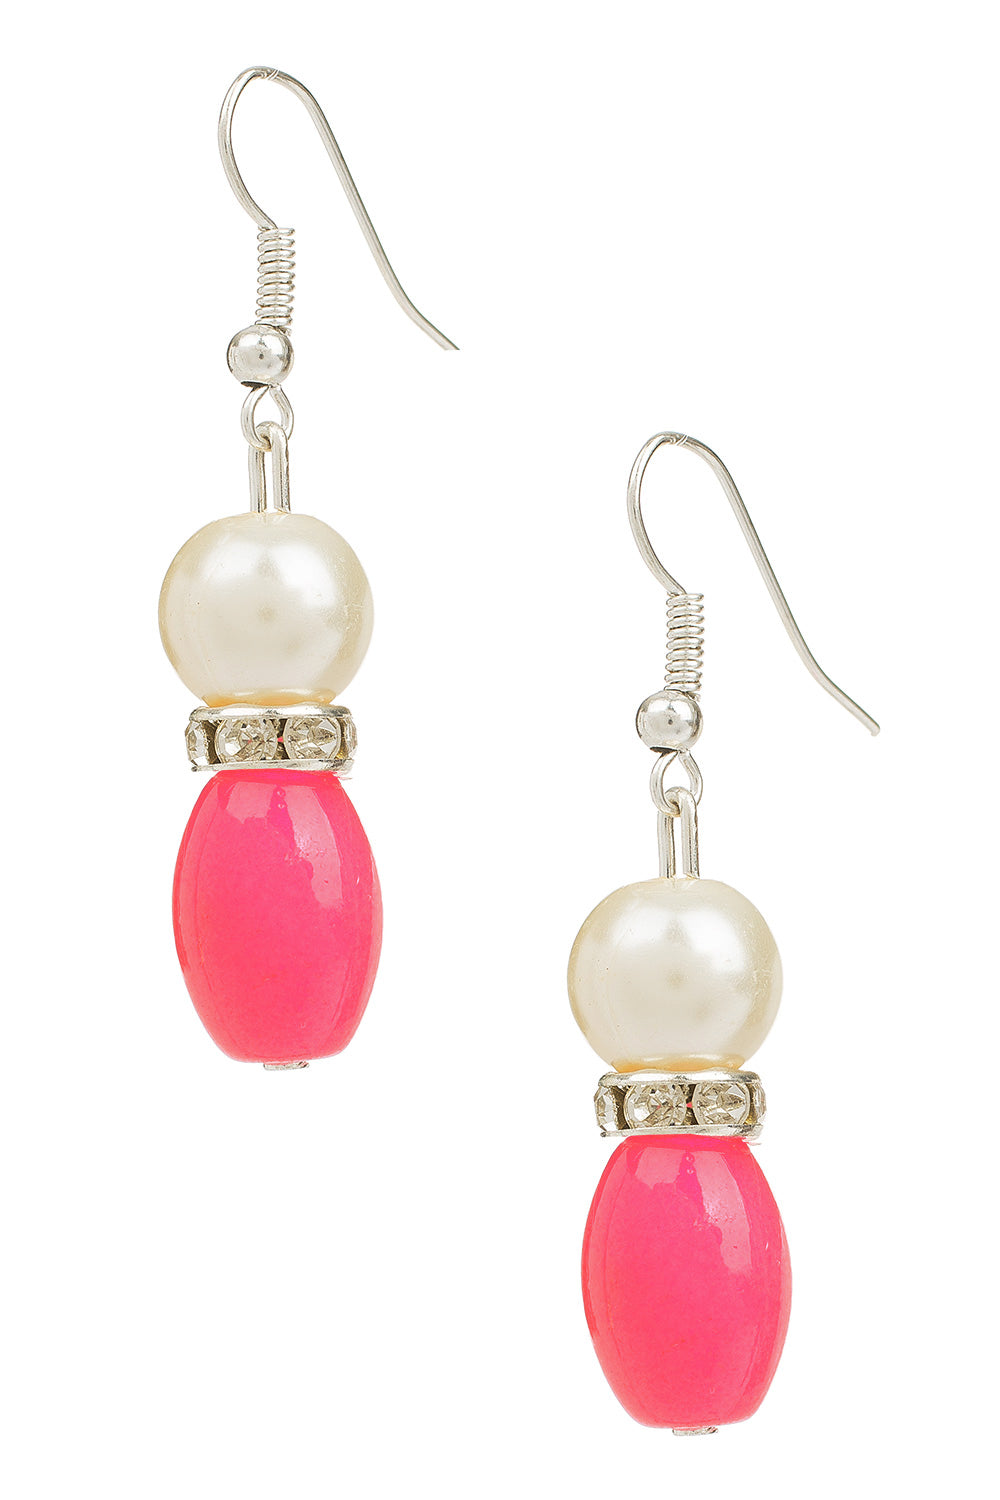 Type 4 Contempo Earrings in Pink